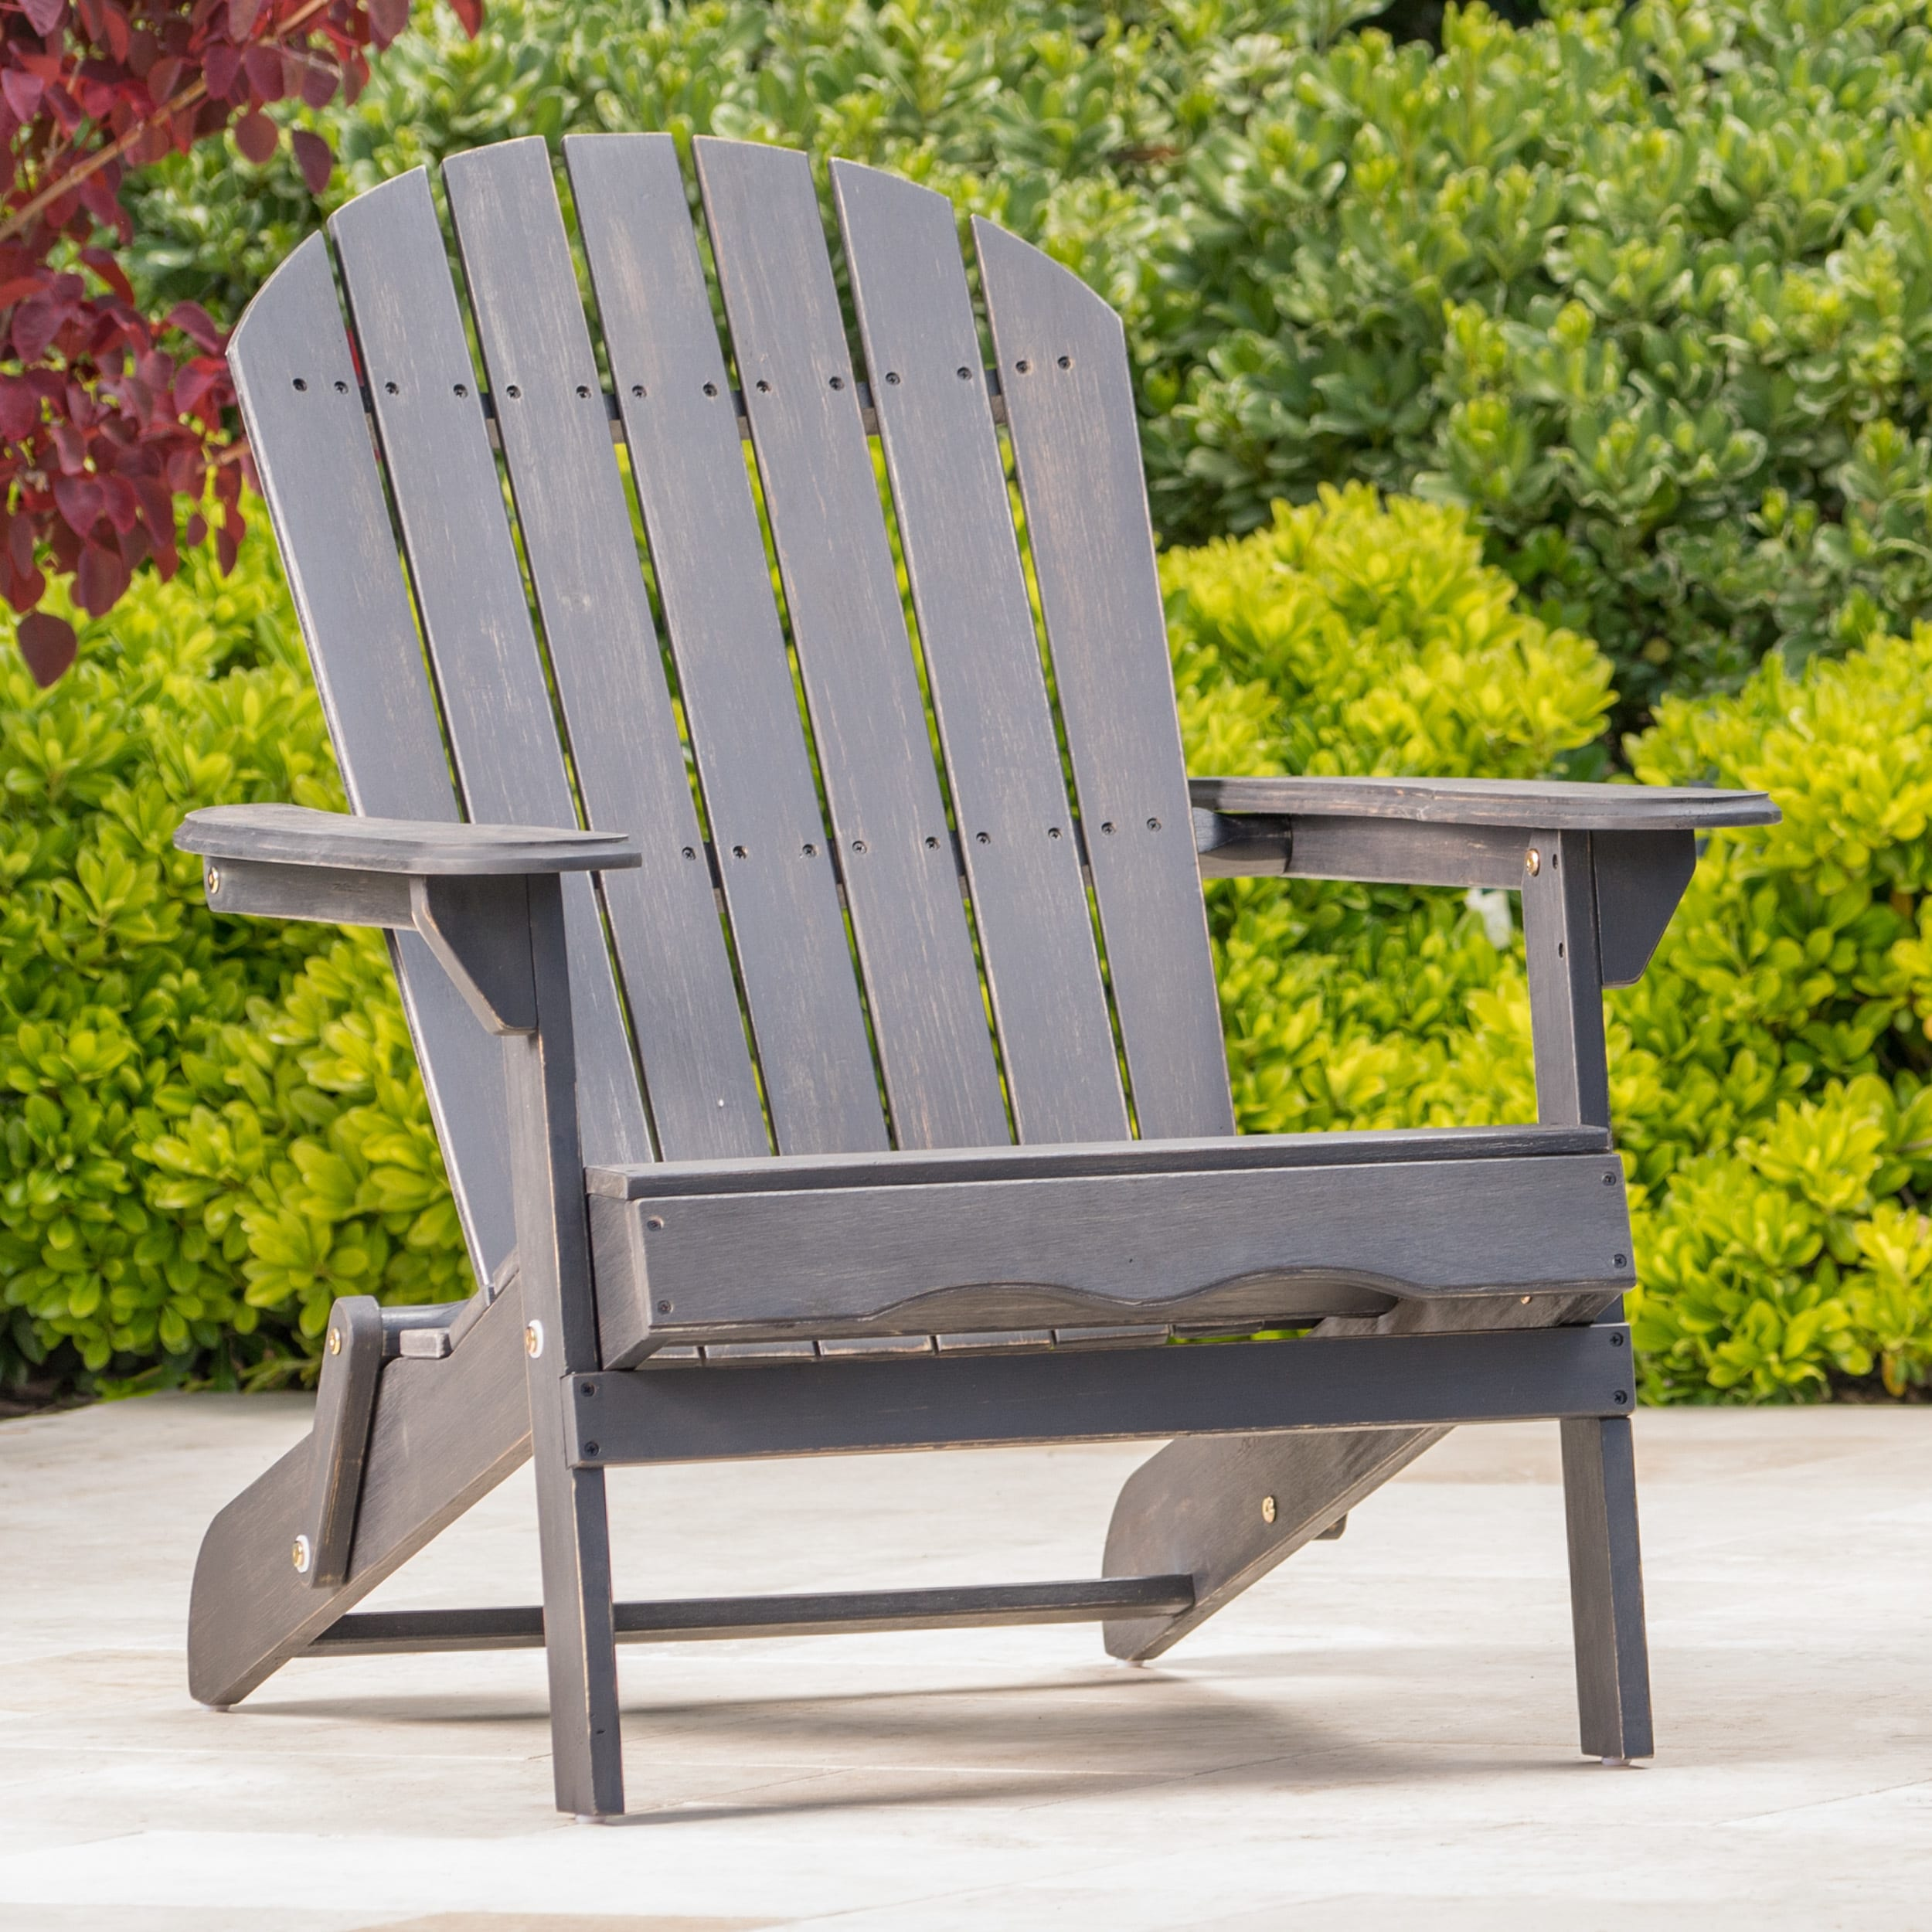 Merveilleux Shop Hanlee Outdoor Folding Wood Adirondack Chair By Christopher Knight  Home   On Sale   Free Shipping Today   Overstock.com   11702230